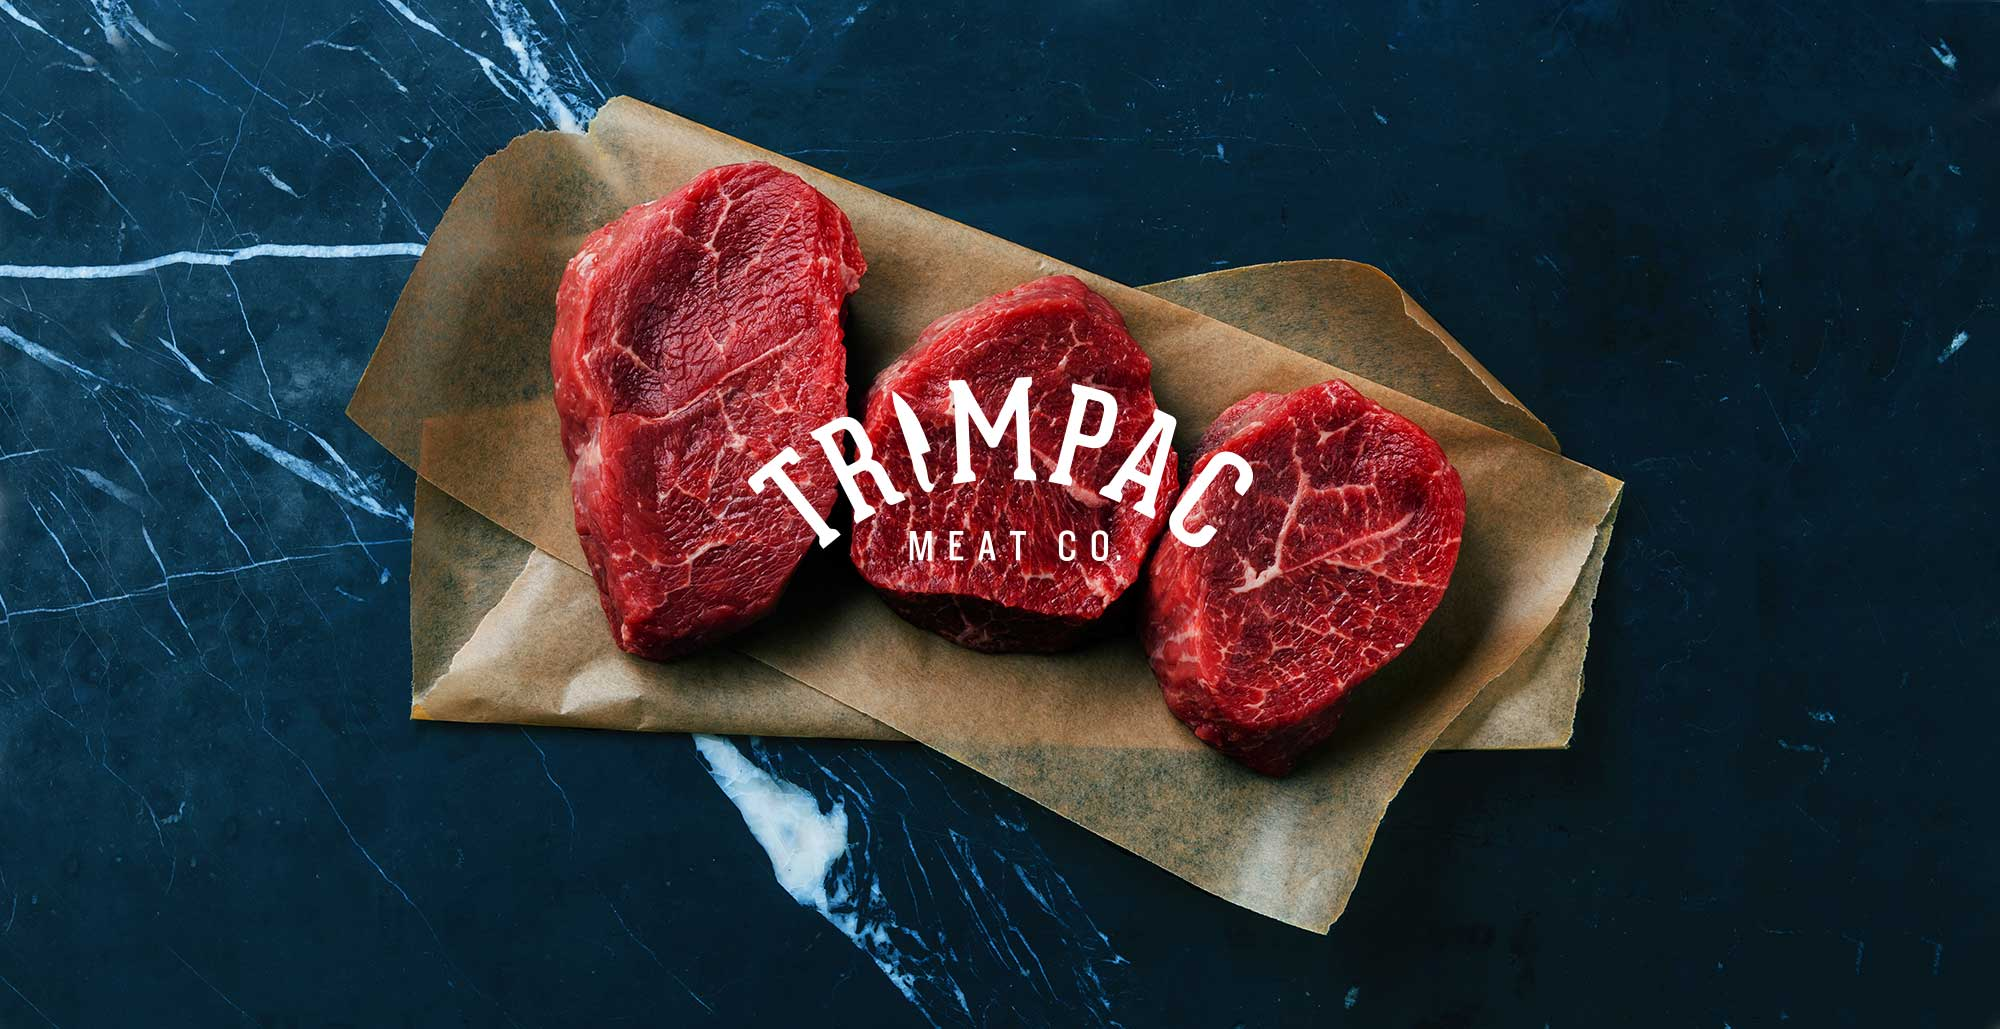 covetdesign_logo-design_branding_package-design_graphic-design_vancouver_work_feature_trimpac-meatparchment